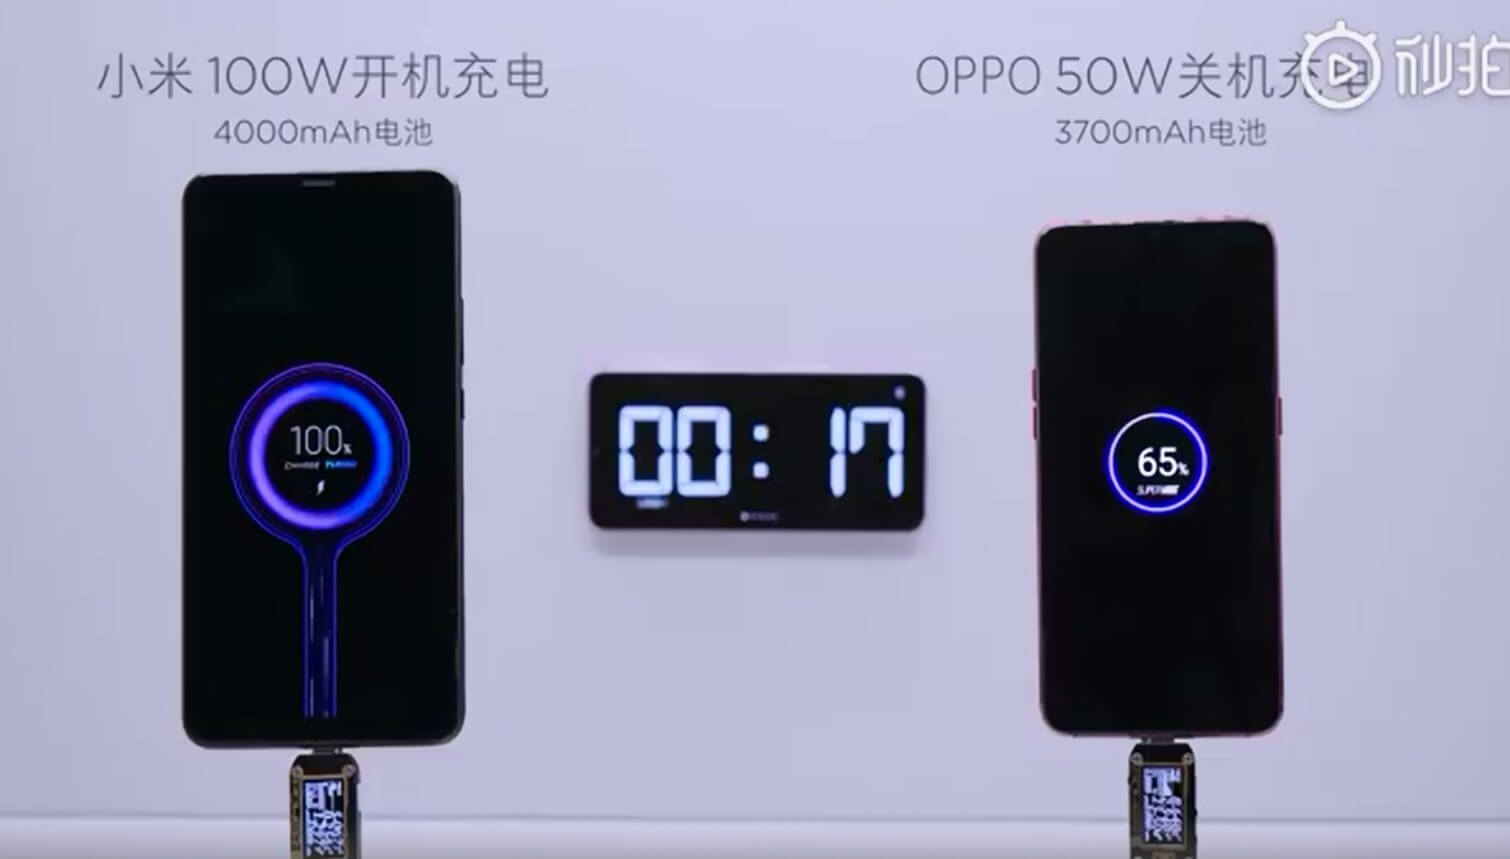 Xiaomi's 100W charger can juice a battery from zero to 100% in 17 minutes